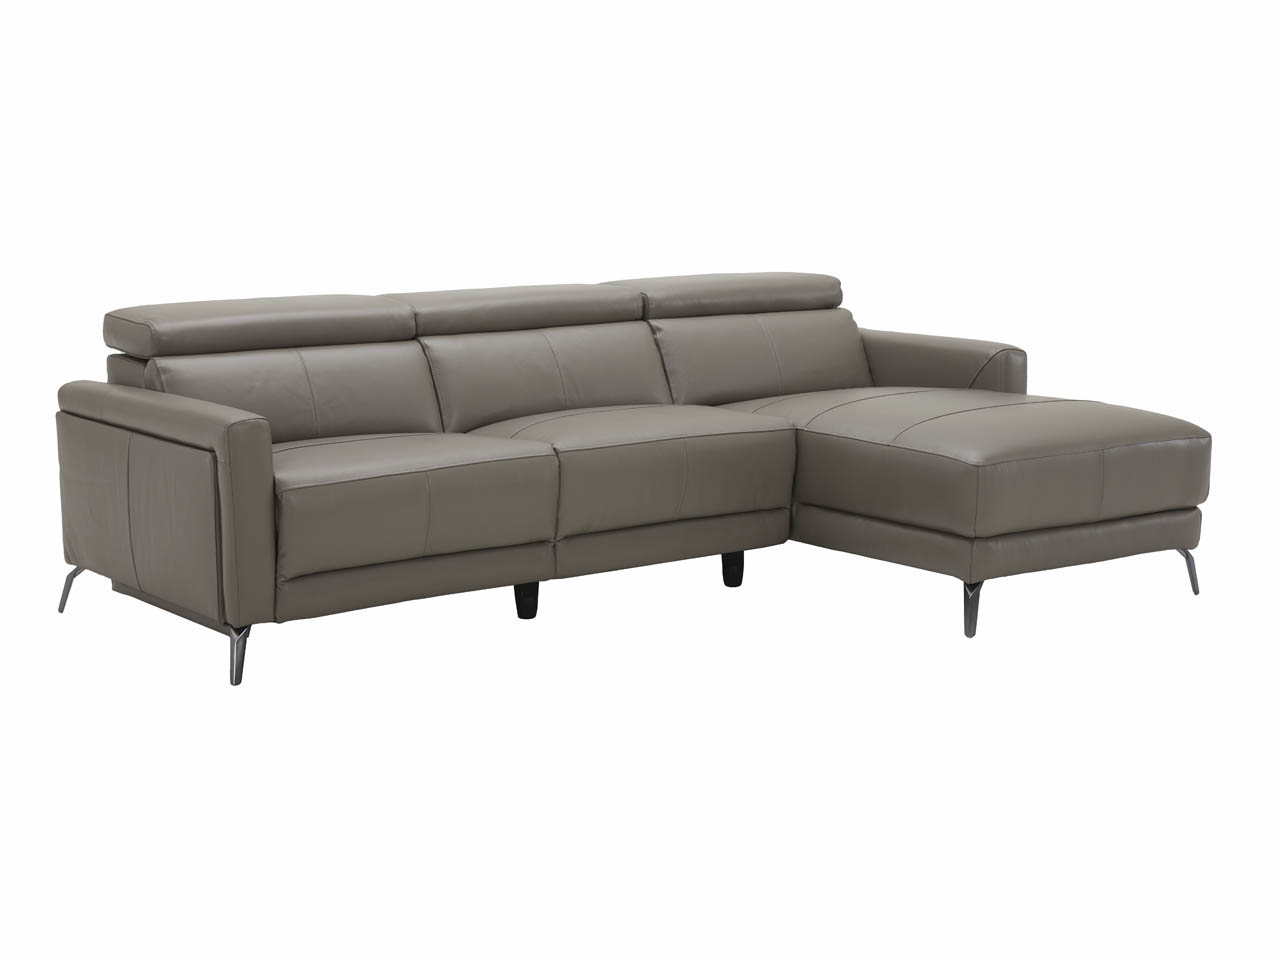 Latest Levi Left Facing Chaise Sectional W/ Power Recliner In Intended For Palisades Reclining Sectional Sofas With Left Storage Chaise (View 9 of 20)